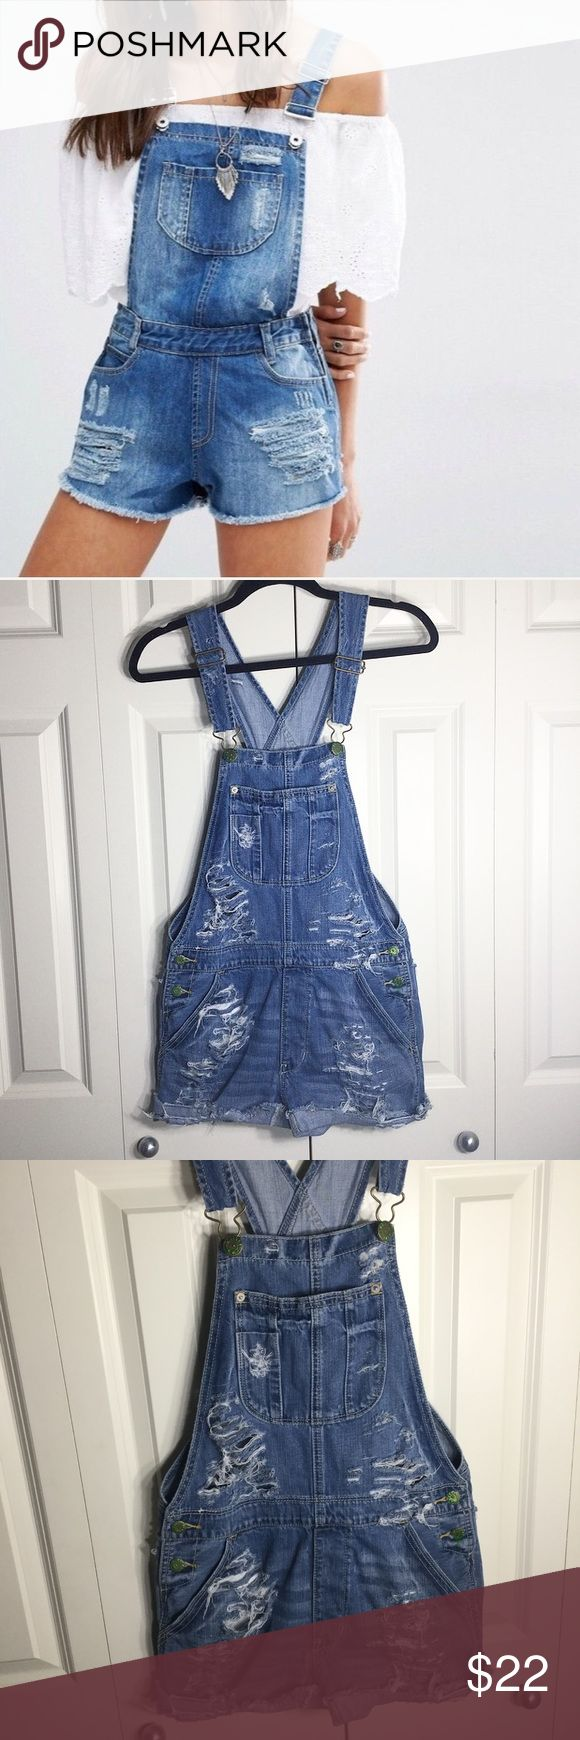 ❣️AEO   Distressed Short Denim Overalls❣️ •American Eagle Outfitters heavily distressed short denim overalls   •size XS •in new condition; with the exception of the handmade distressed look  IG: @notyourhamper 📸 Same day shipping!📆 Pet/smoke free home!🚭 Offers encouraged!💸 Bundle & save!🛍  Thanks for looking, xo💋 American Eagle Outfitters Jeans Overalls